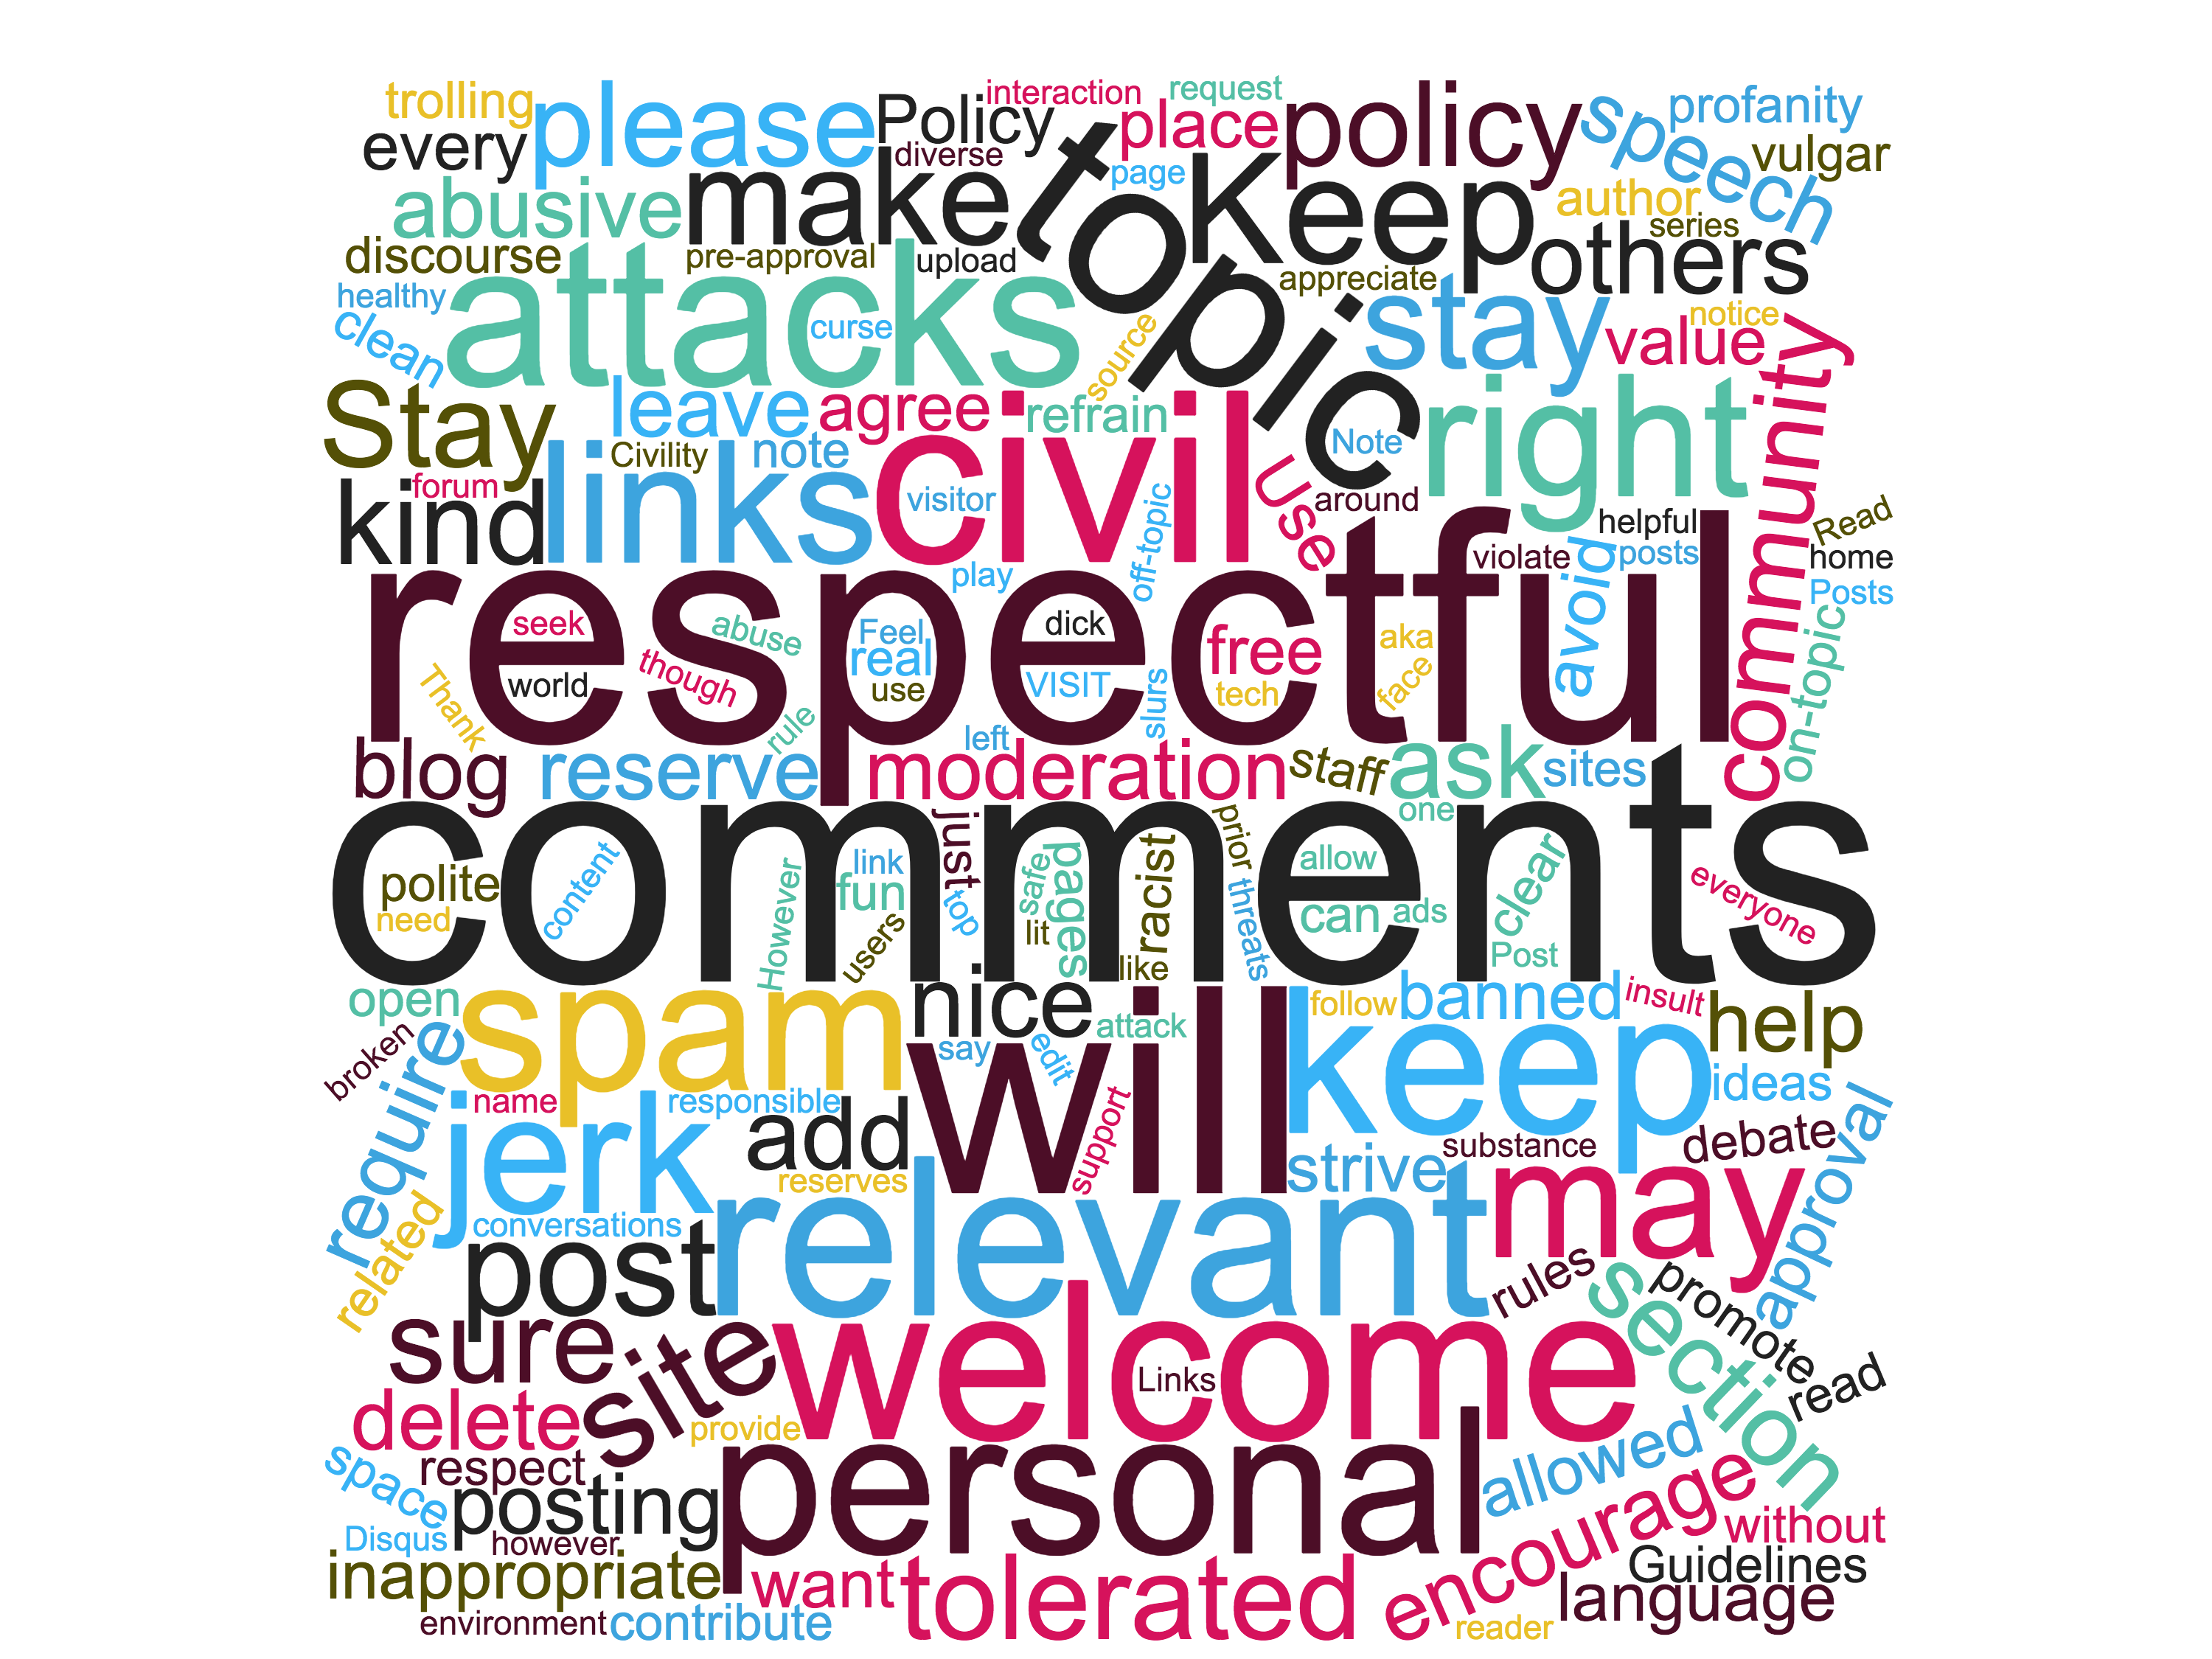 comment-policy-word-cloud.png